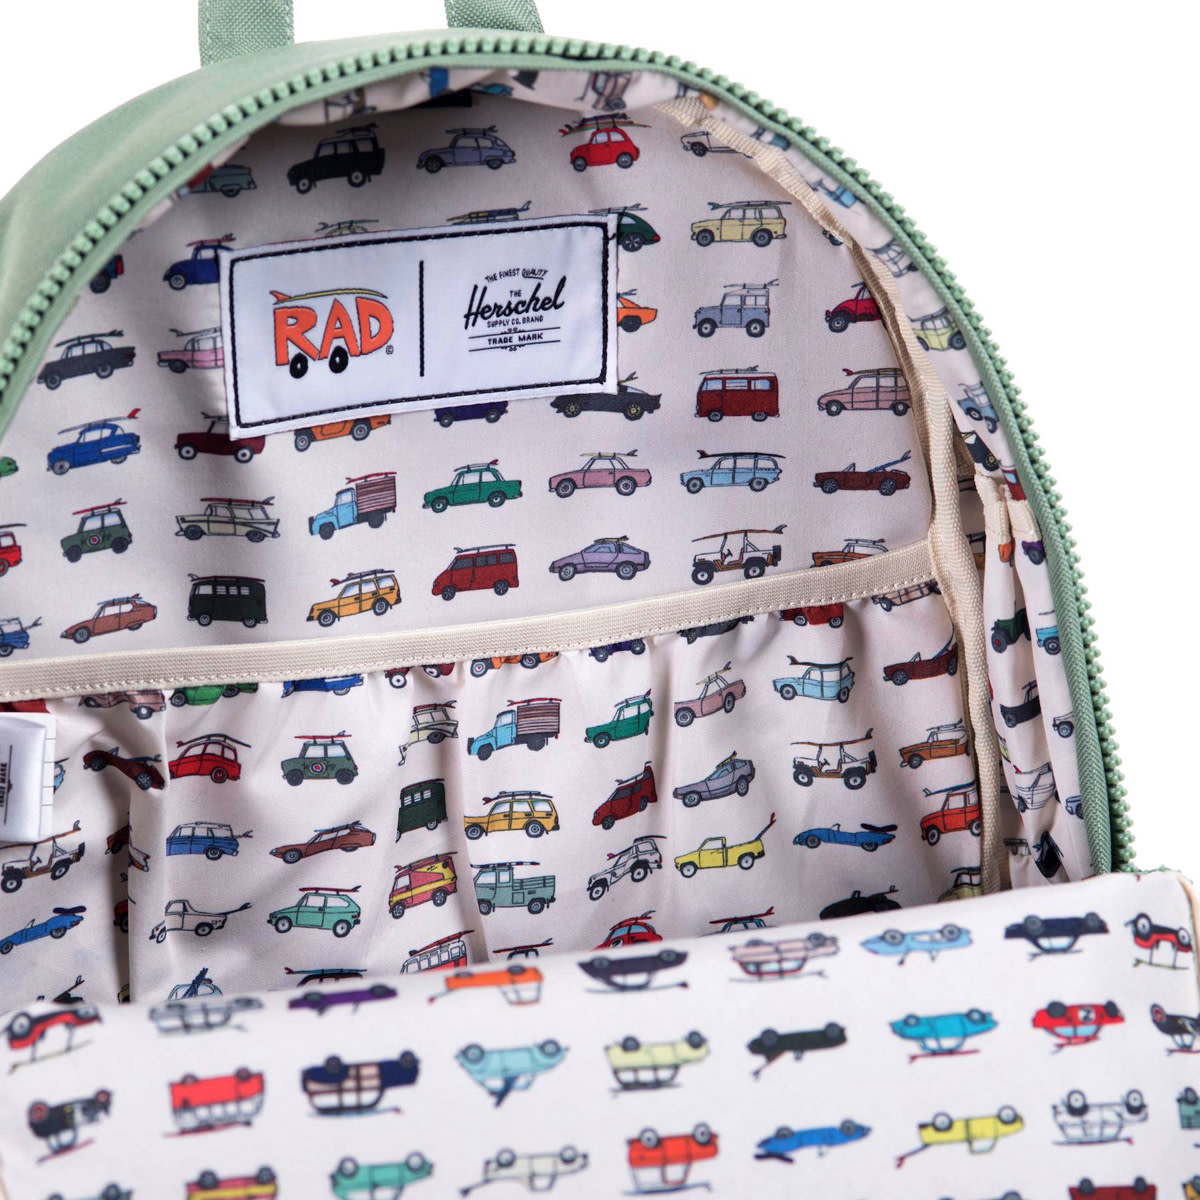 herschel-supply-co-x-kevin-butler-rad-cars-with-rad-surfboards-collection-11